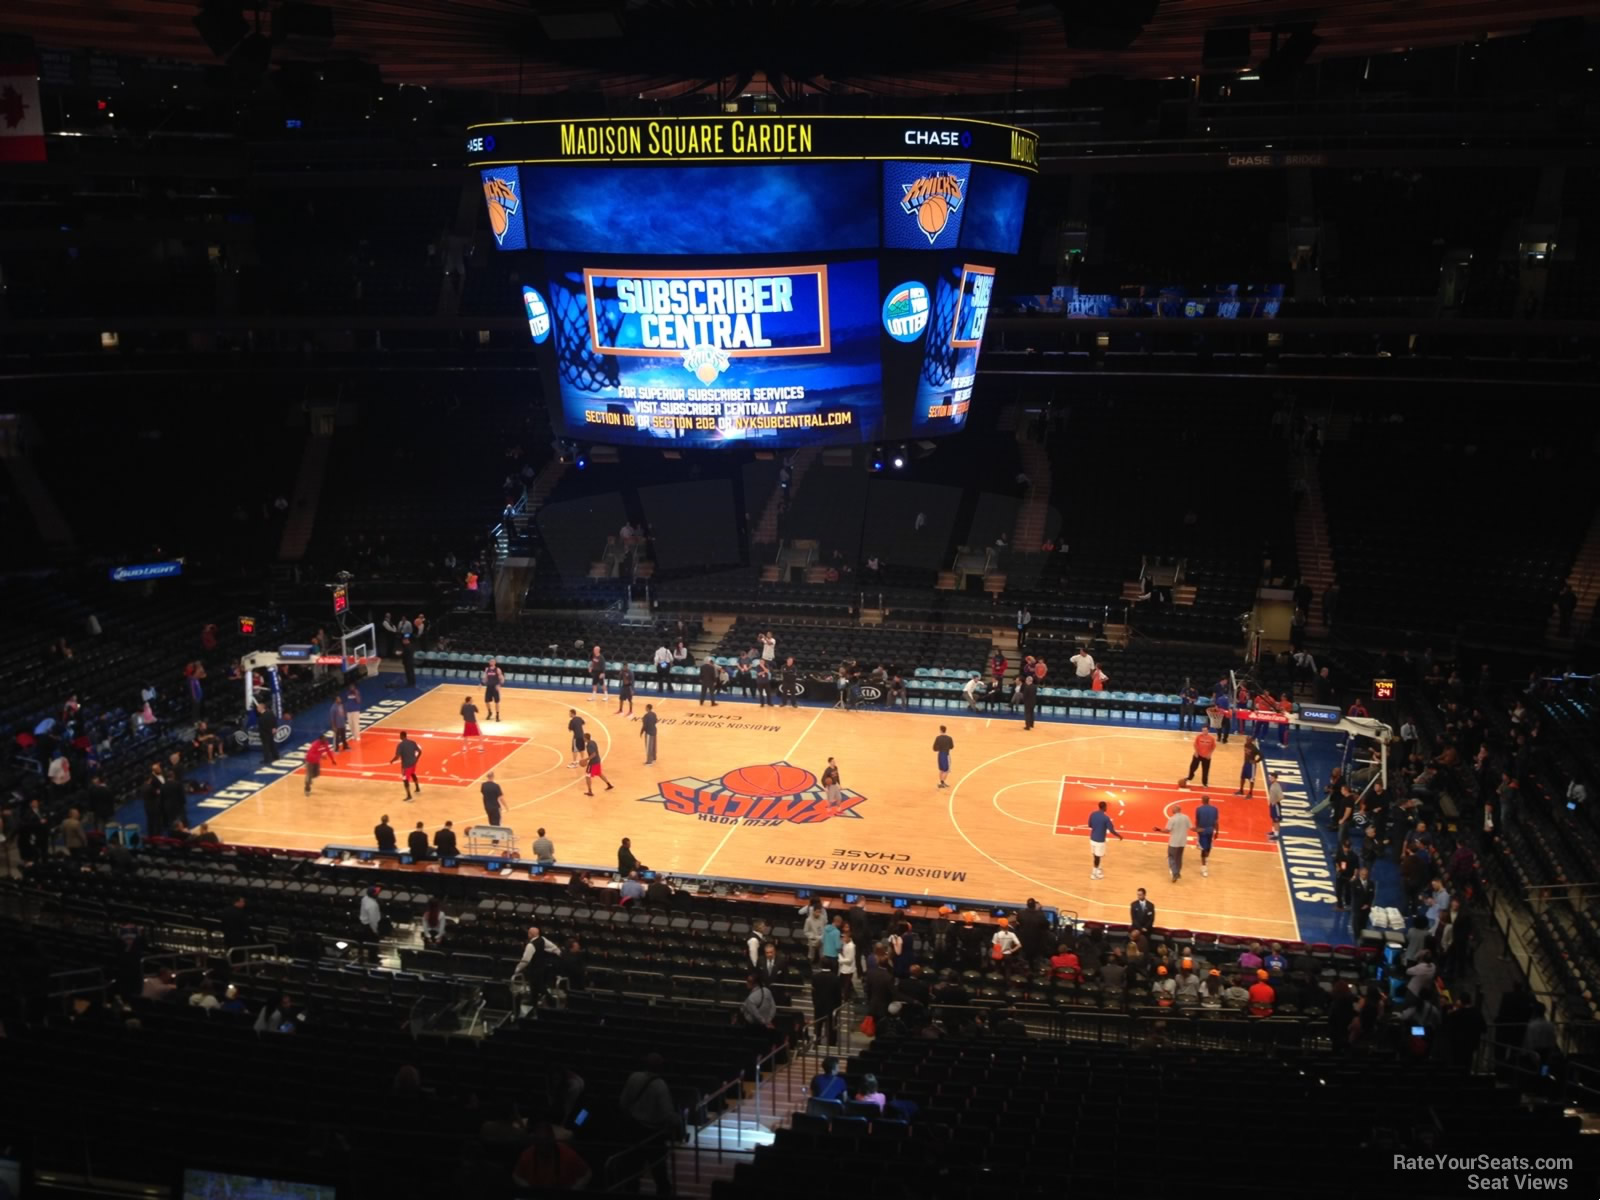 Madison square garden section 212 new york knicks Madison square garden basketball